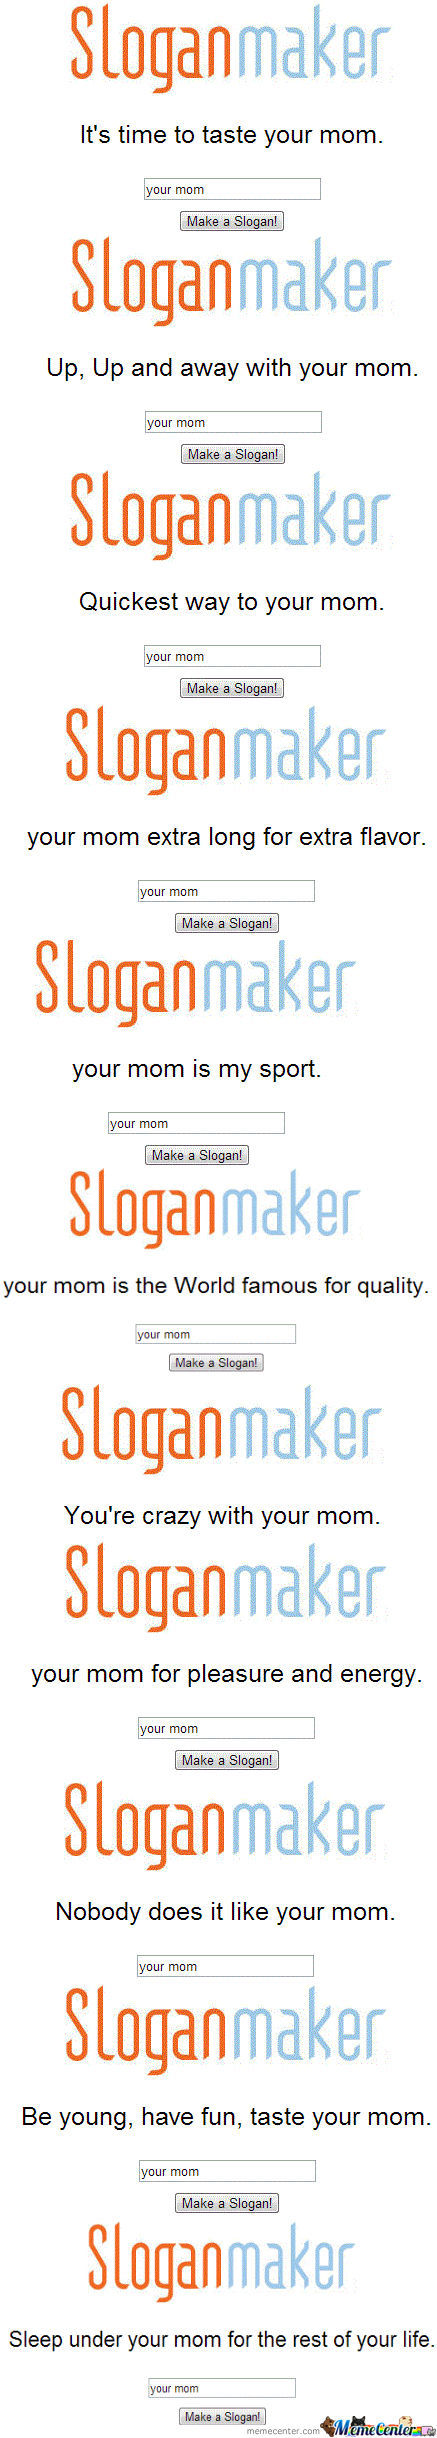 Sloganmaker: Your Mom